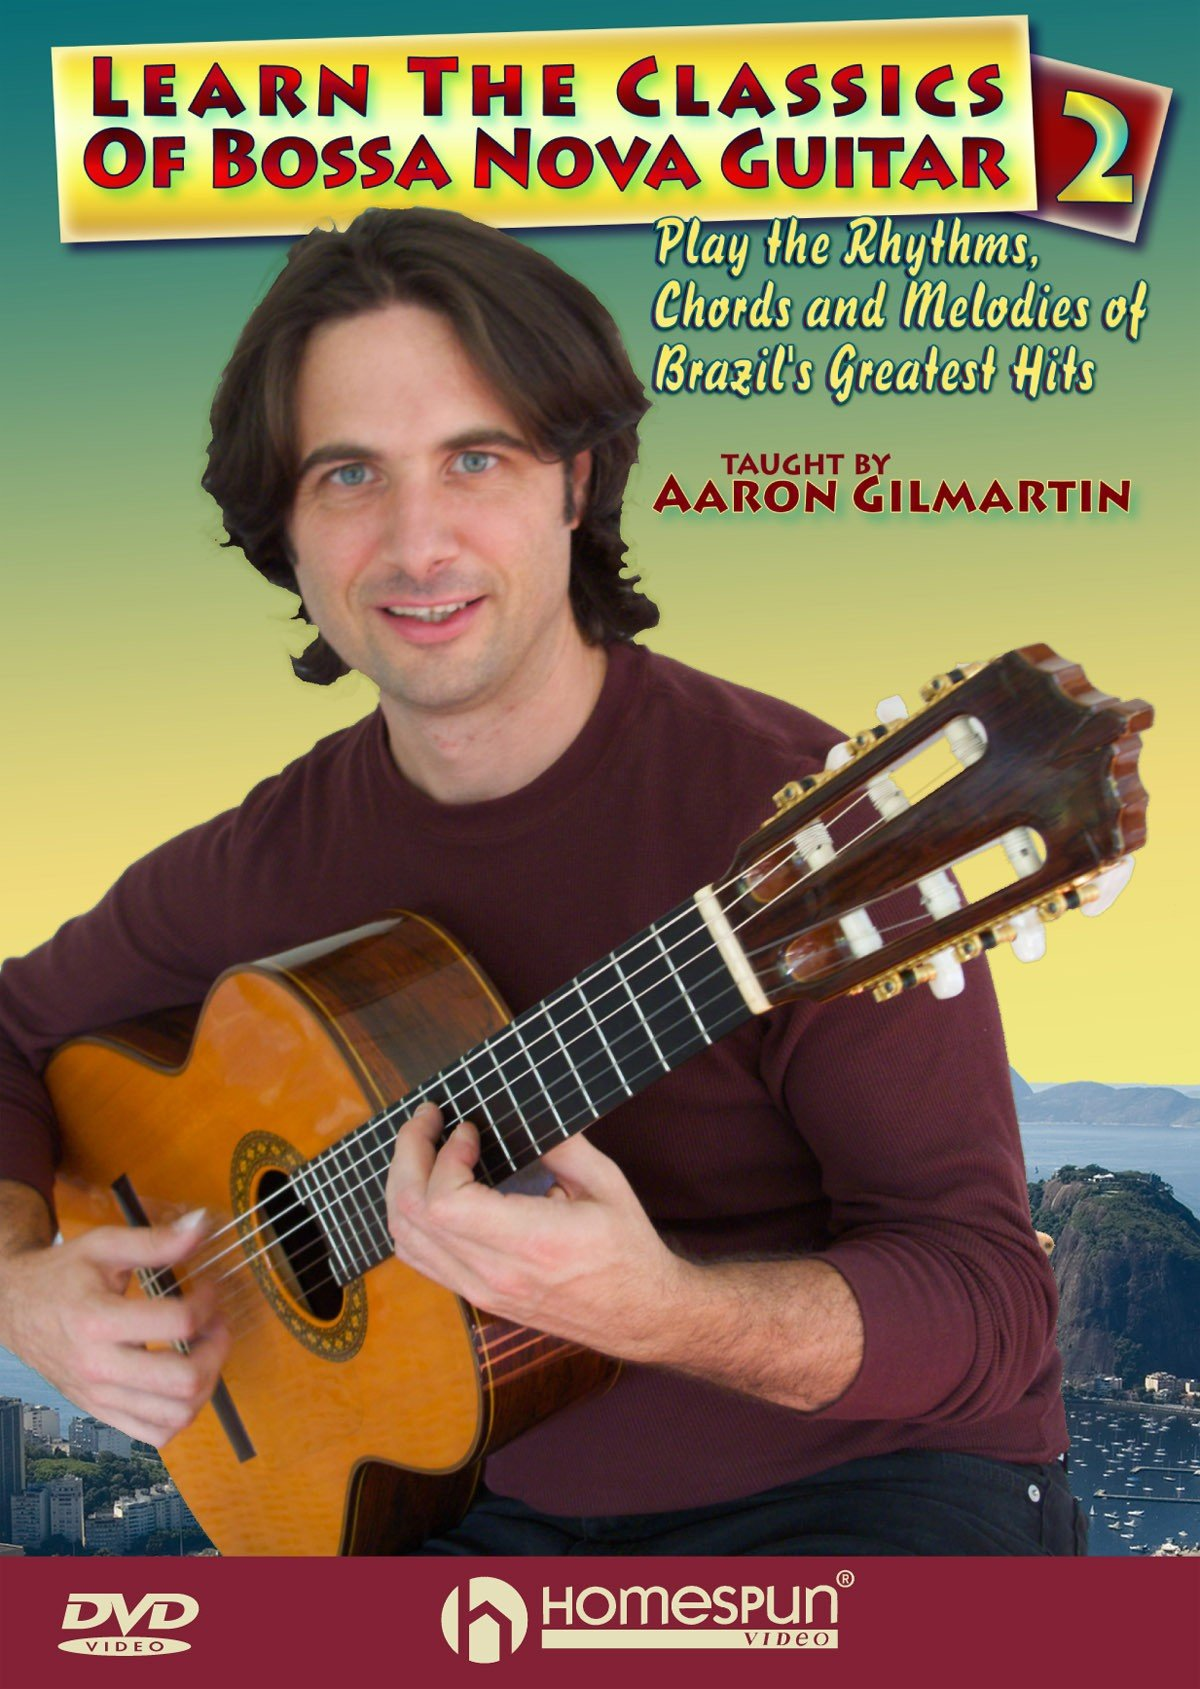 Aaron Gilmartin - Learn Classics Of Bossa Nova Guitar, Vol. 2 (DVD)